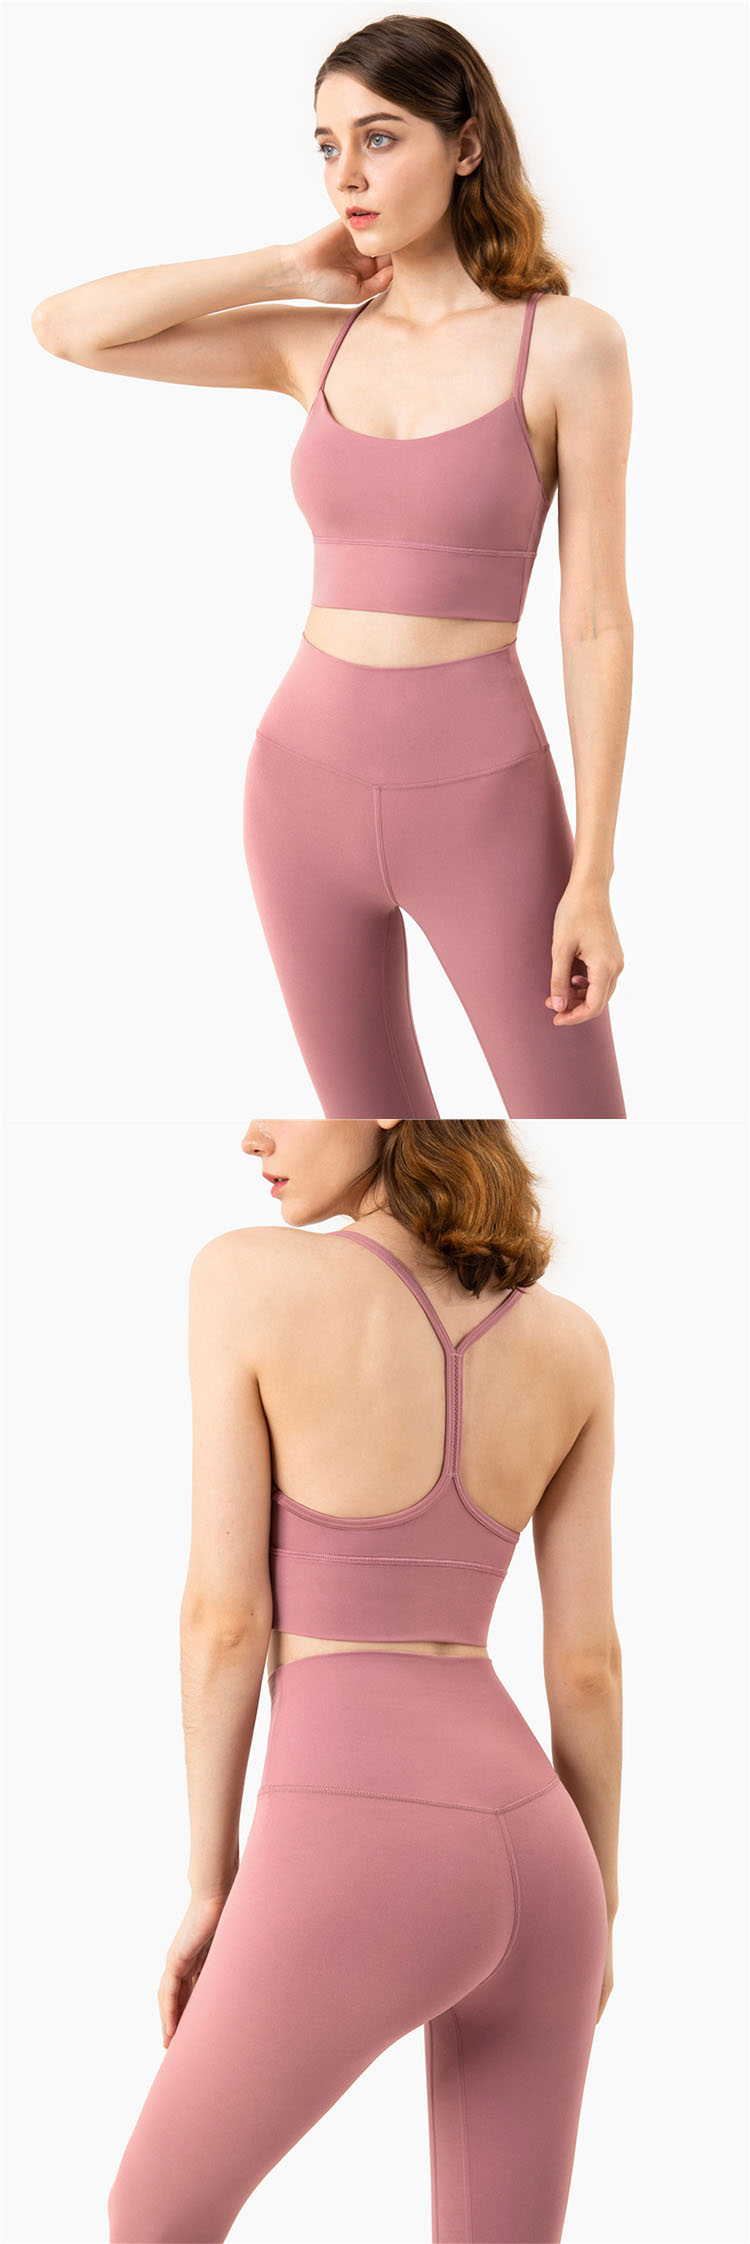 A sexy beautiful back is interwoven by delicate thin shoulder straps.